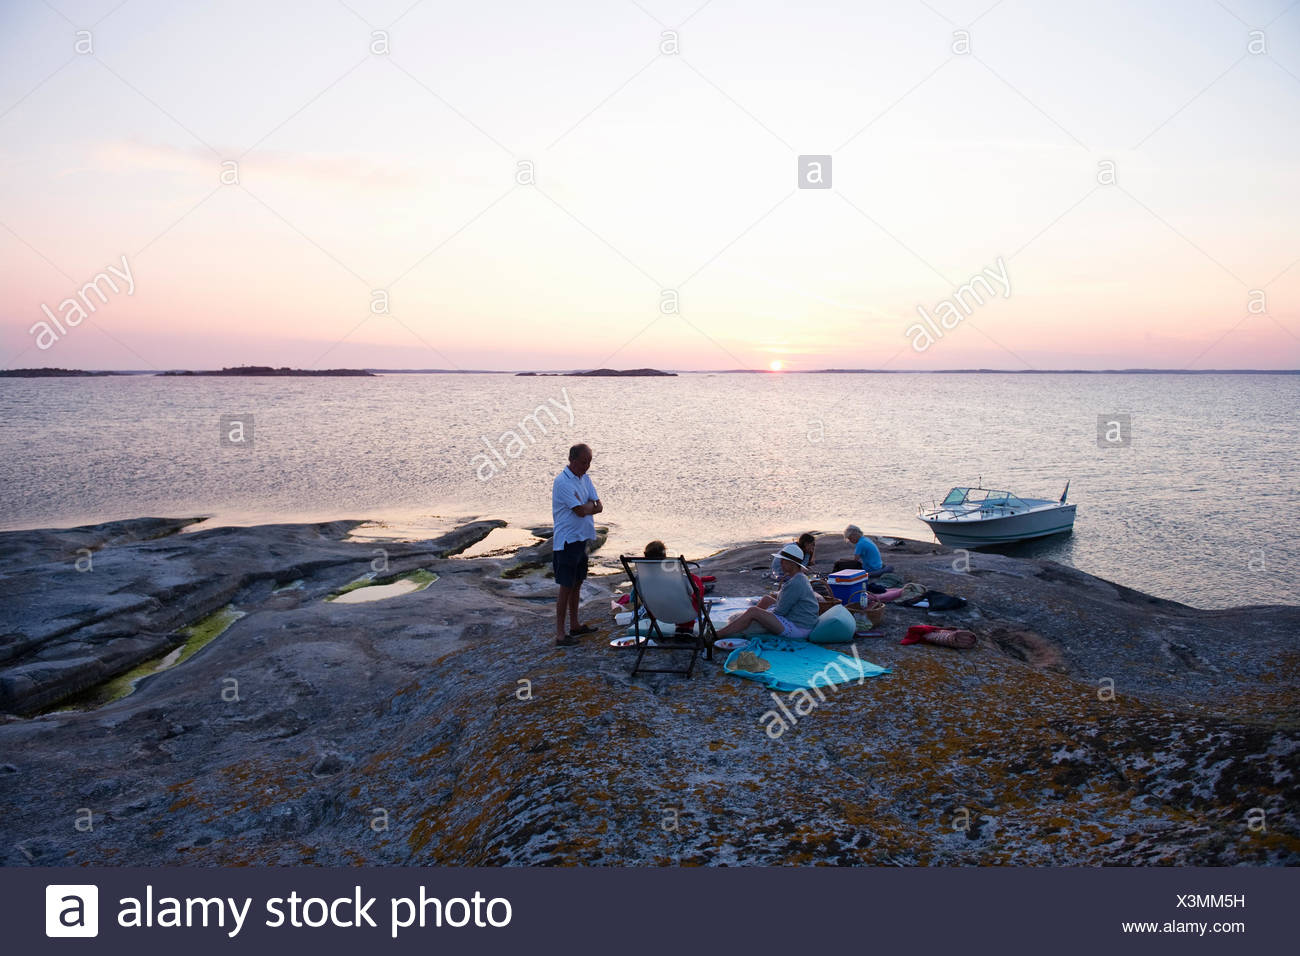 Sweden, Sodermanland, Stockholm Archipelago, Norsten, Scenic seascape with people picnicking - Stock Image